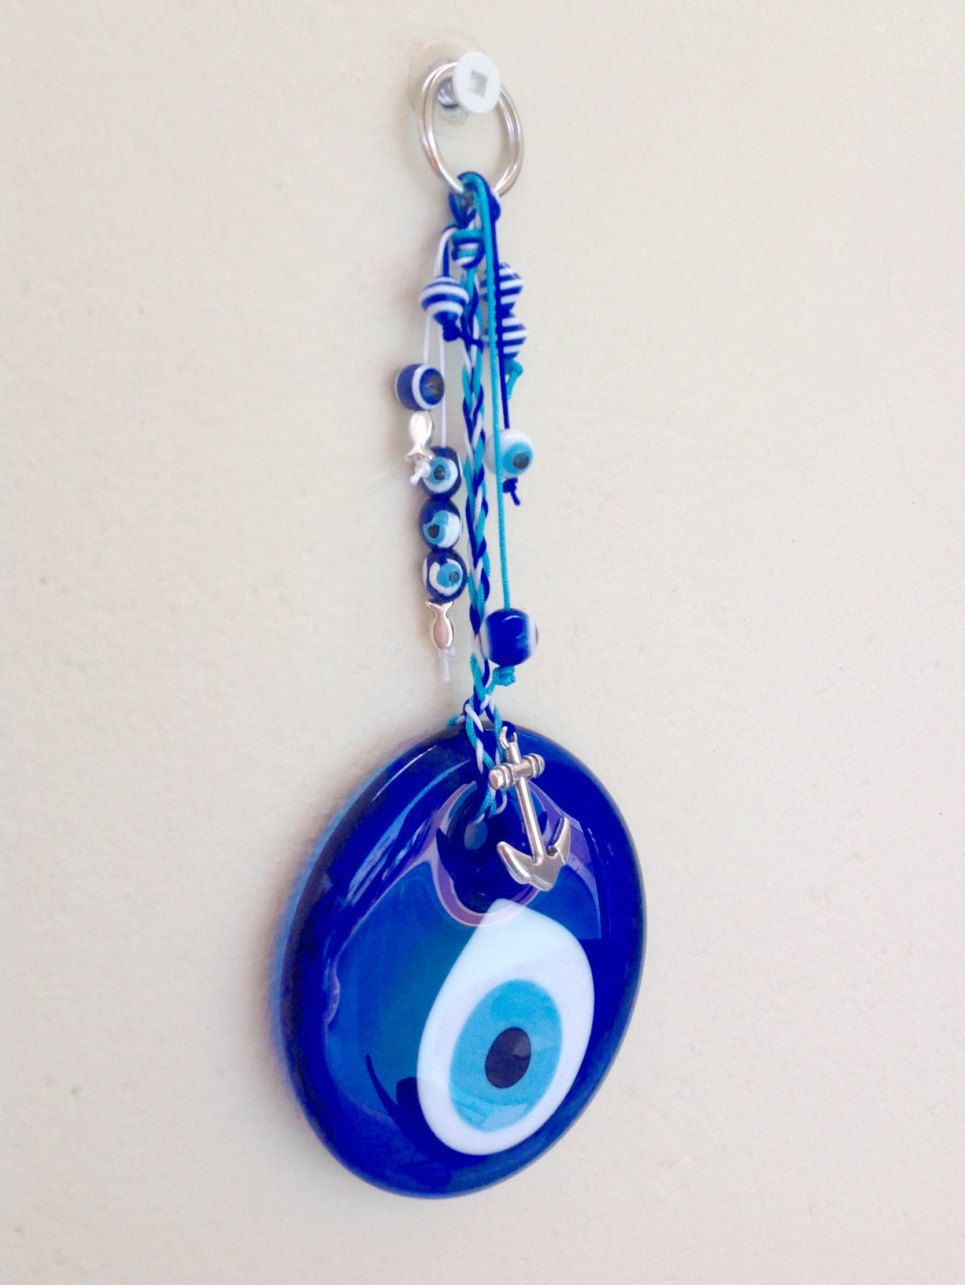 Round Evil Eye Charm Good Luck Charm Nazar Talisman Greek Turk